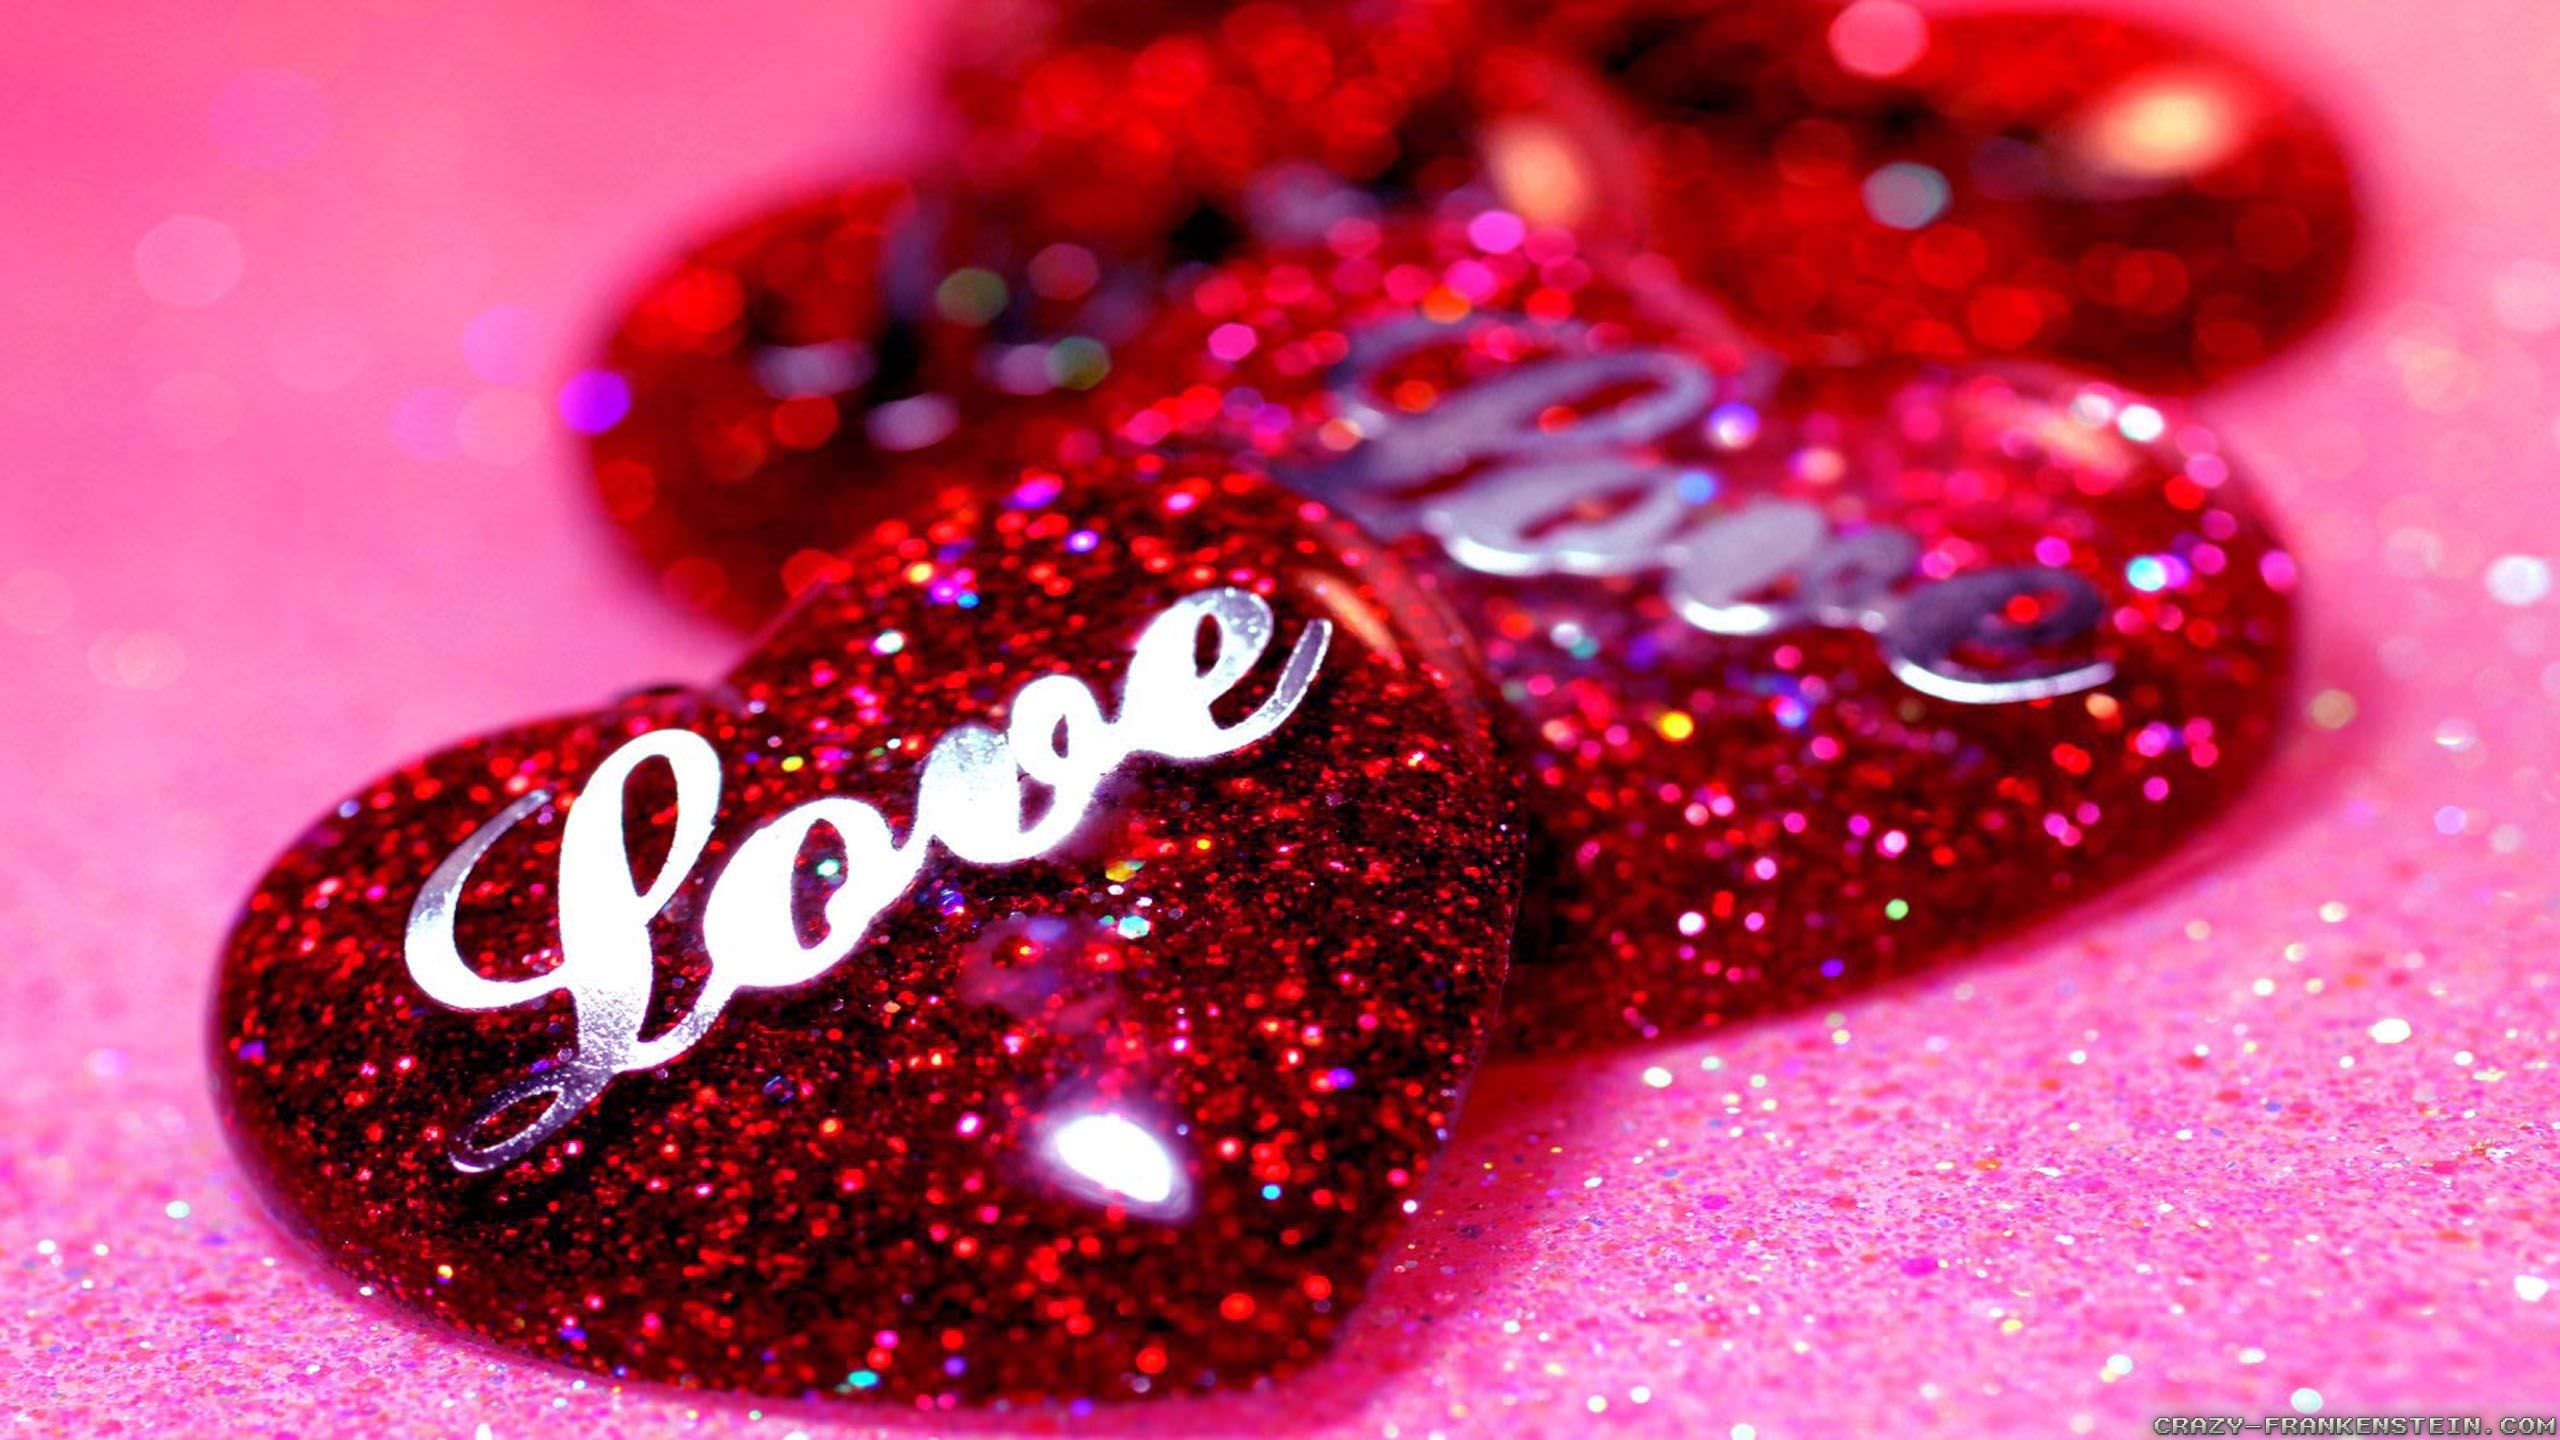 Hd Love Wallpapers For Mobile Free Download: Glitter Tumblr Backgrounds